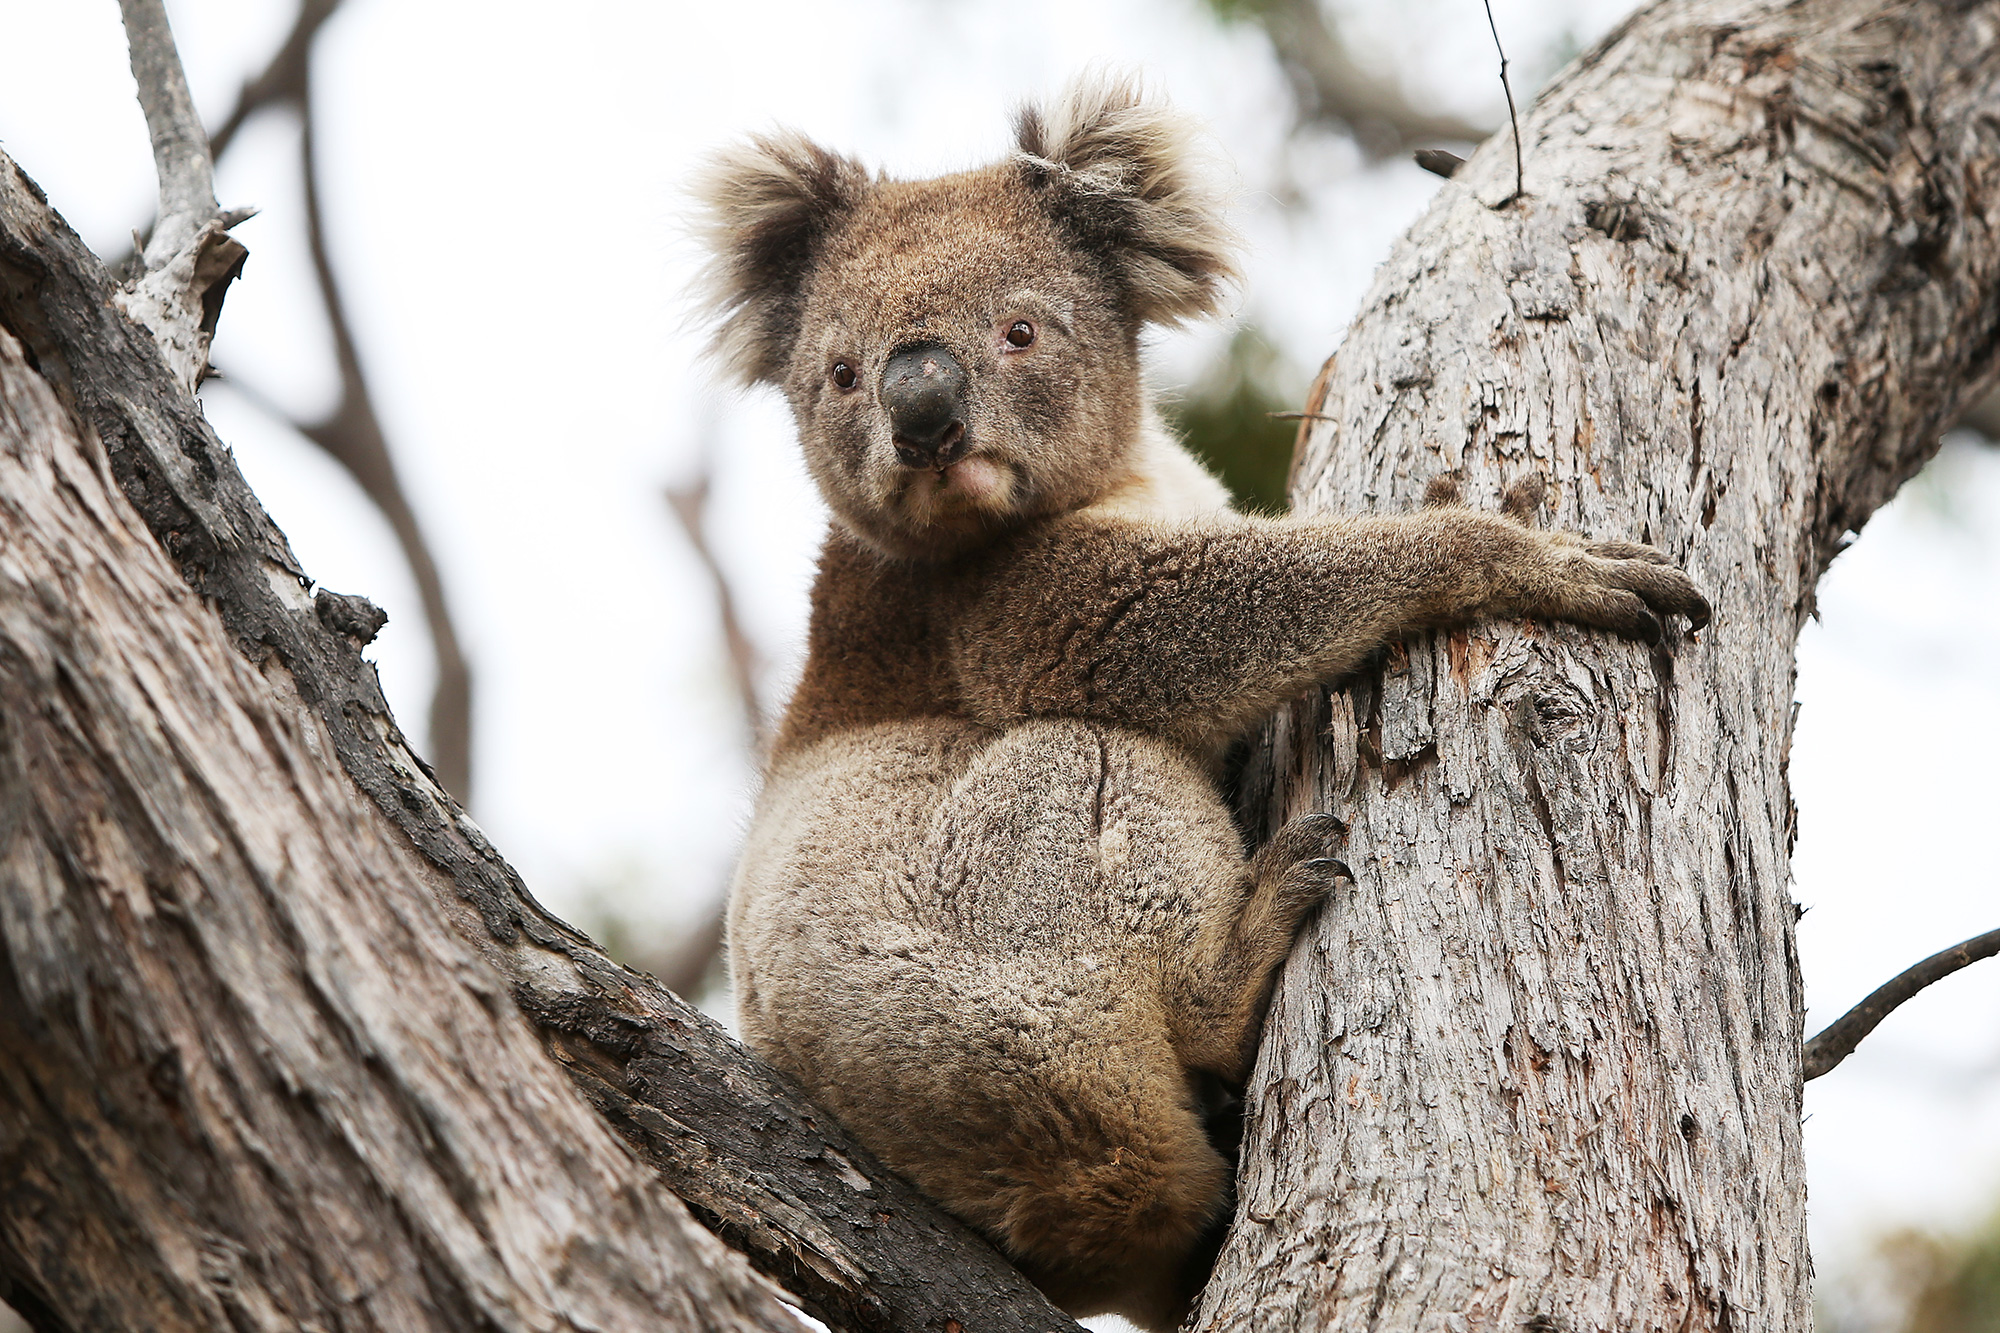 A koala affected by the recent bushfires is released back into native bushland following treatment at the Kangaroo Island Wildlife Park on February 21, 2020 in Parndana, Australia.